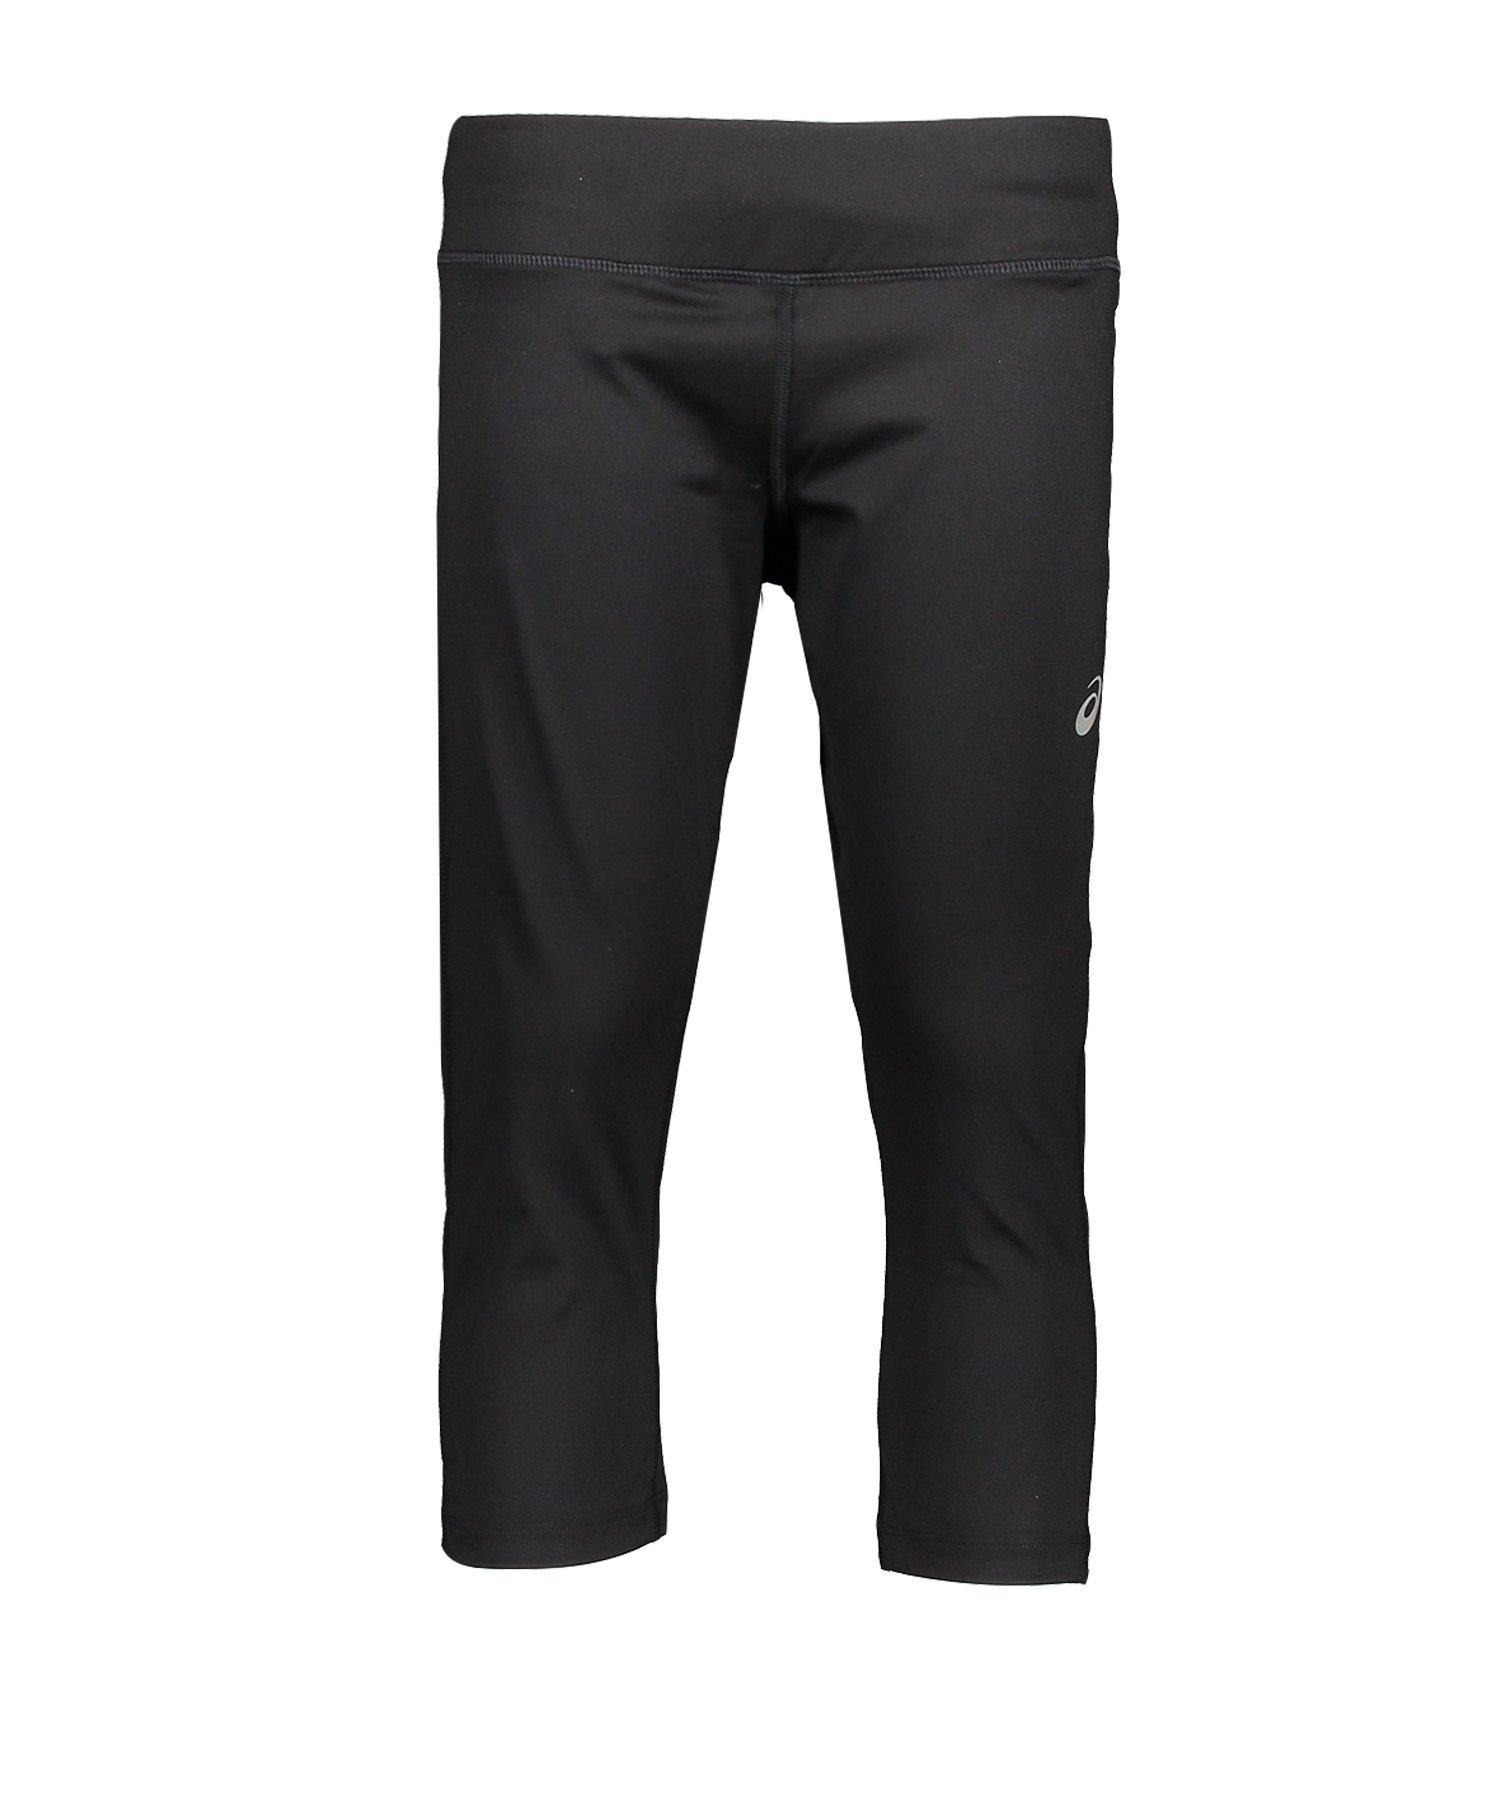 Asics Silver Knee Tight Running Damen F001 - schwarz